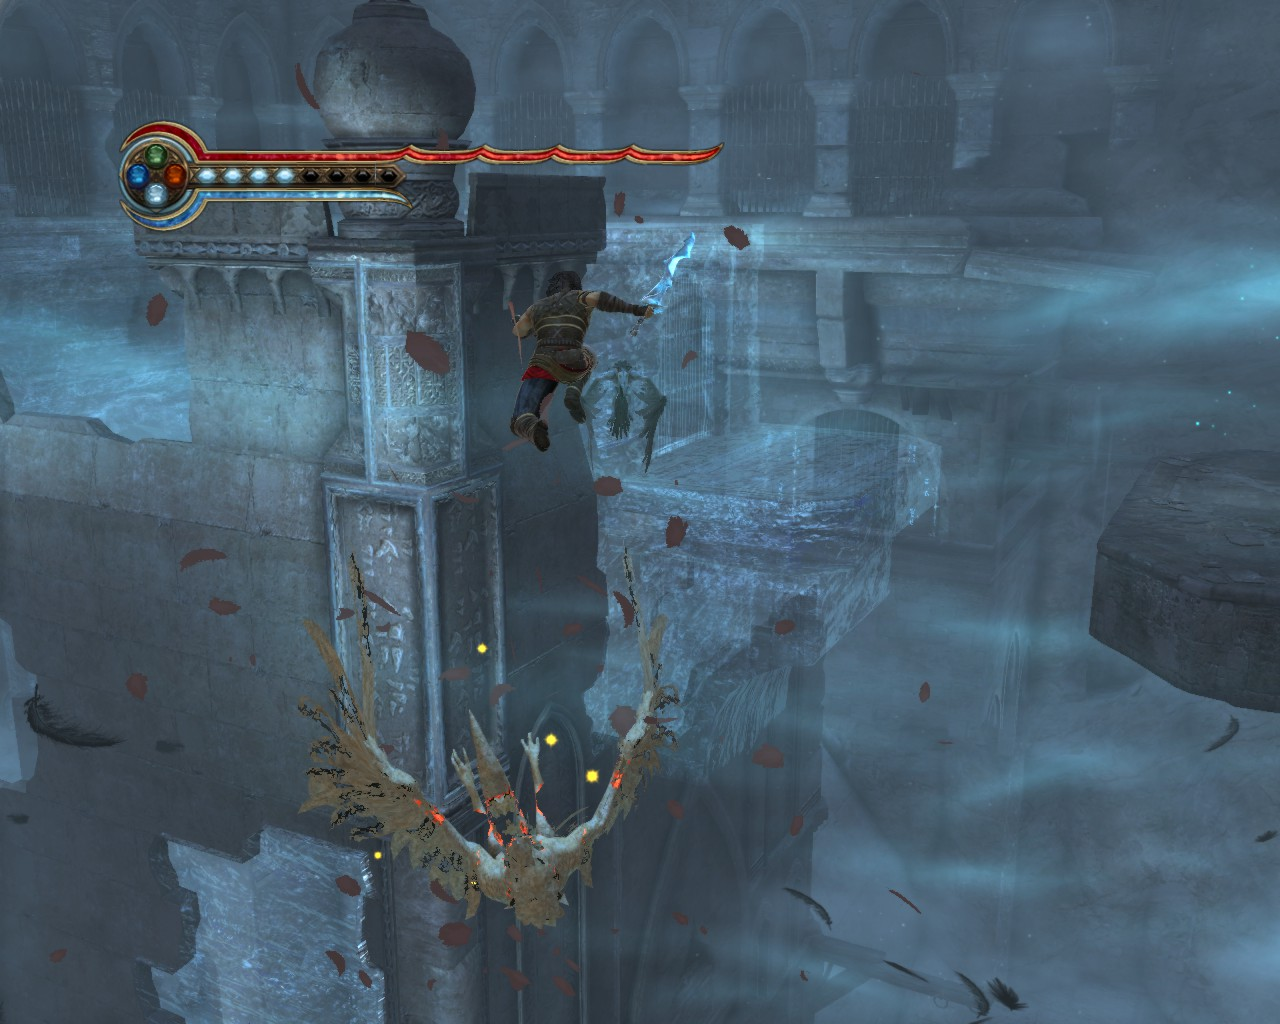 Prince of Persia 2014-06-04 19-56-24-36.jpg - Prince of Persia: The Forgotten Sands